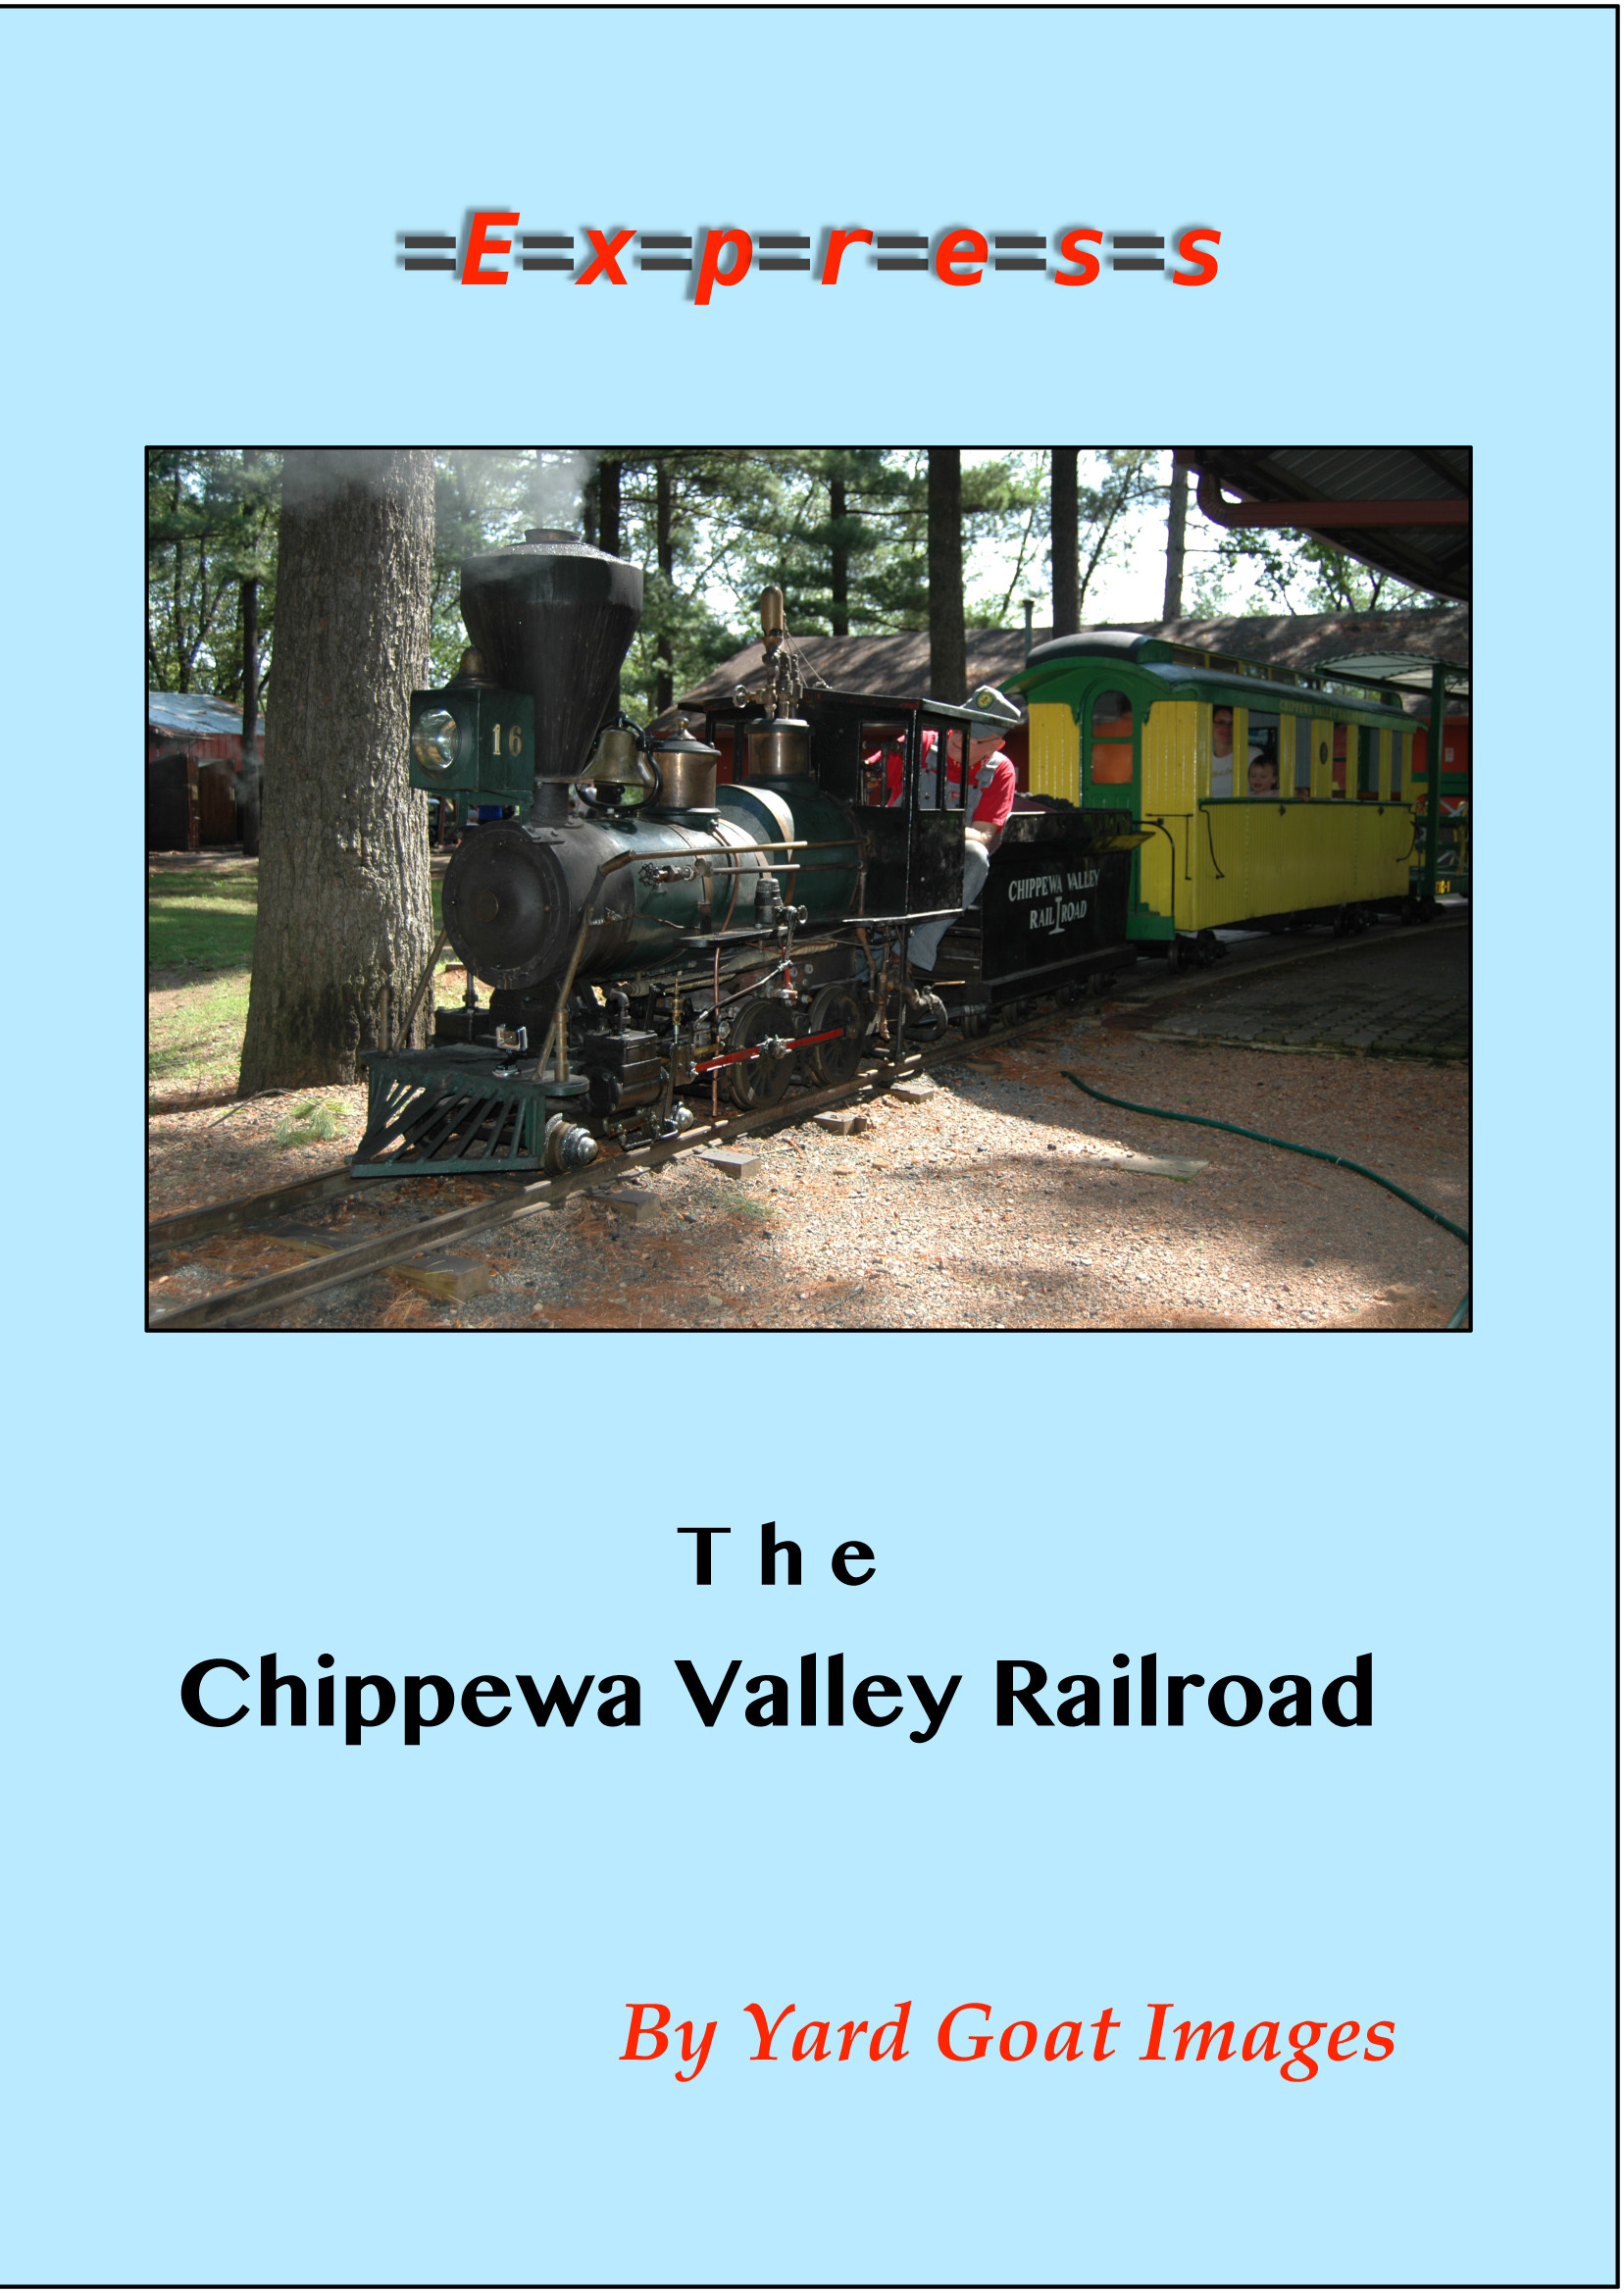 The Chippewa Valley Railroad EXPRESS 1517